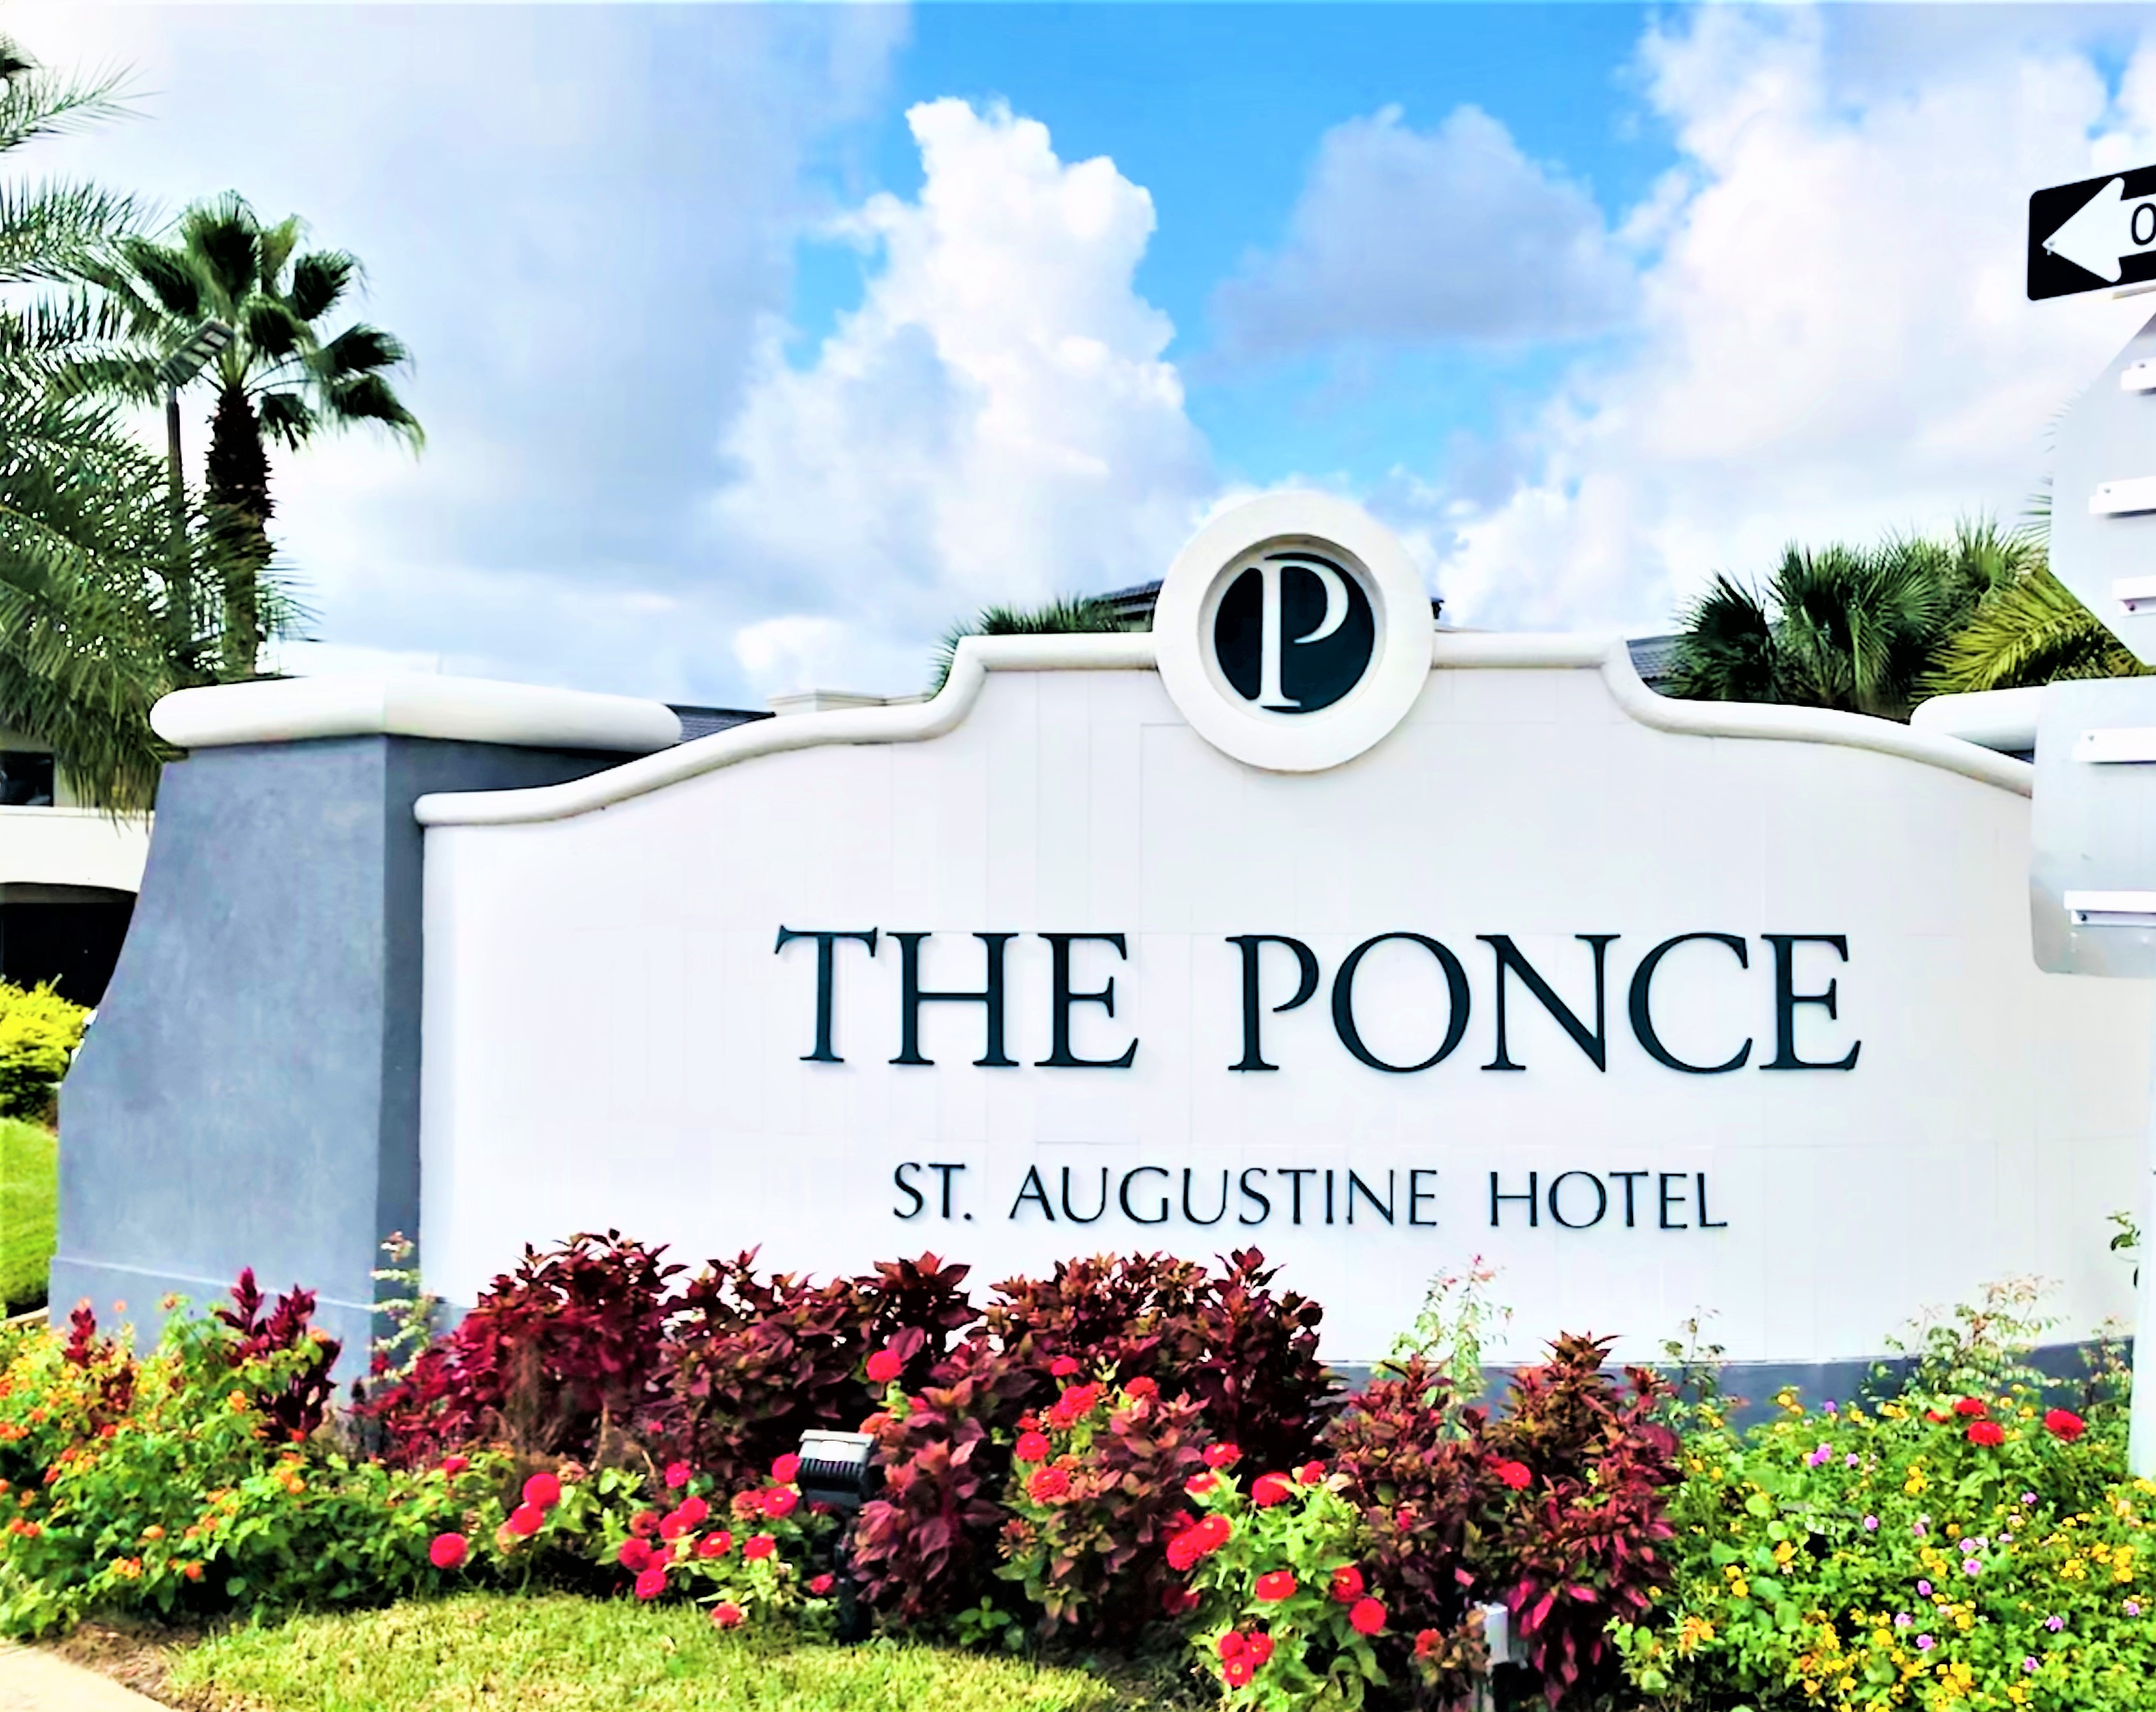 Historic Ponce Hotel